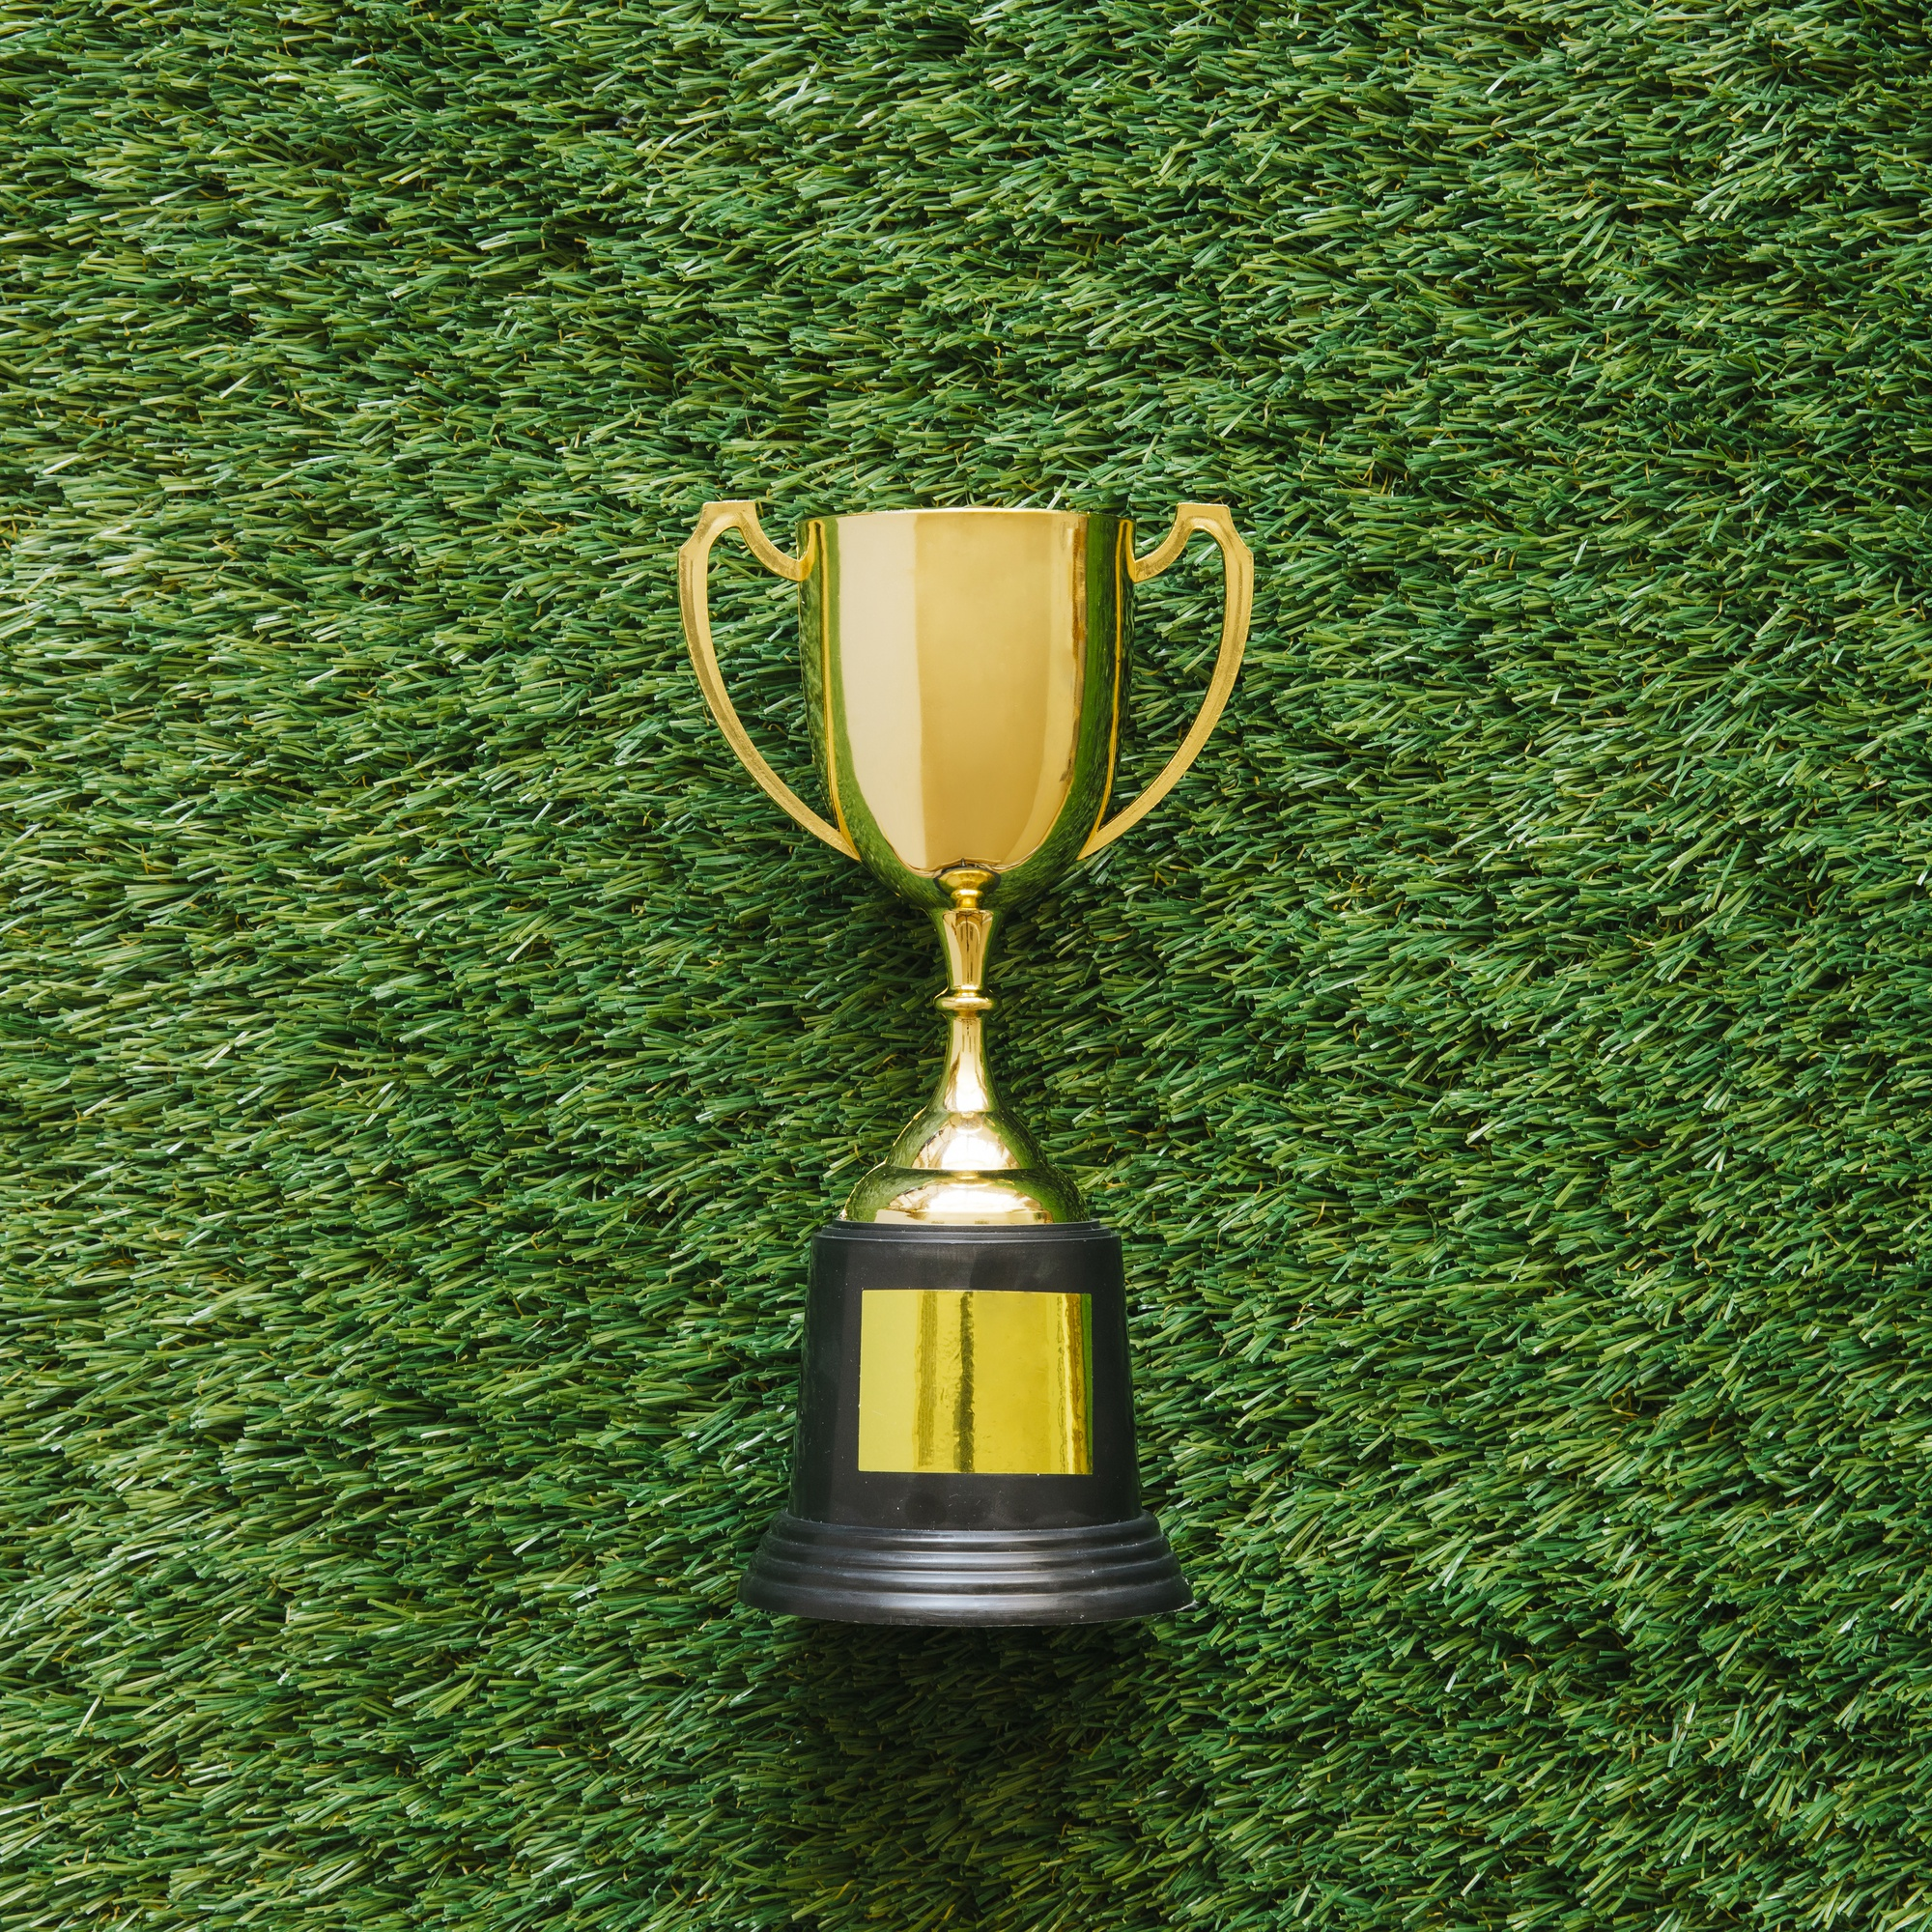 Football background on grass with trophy